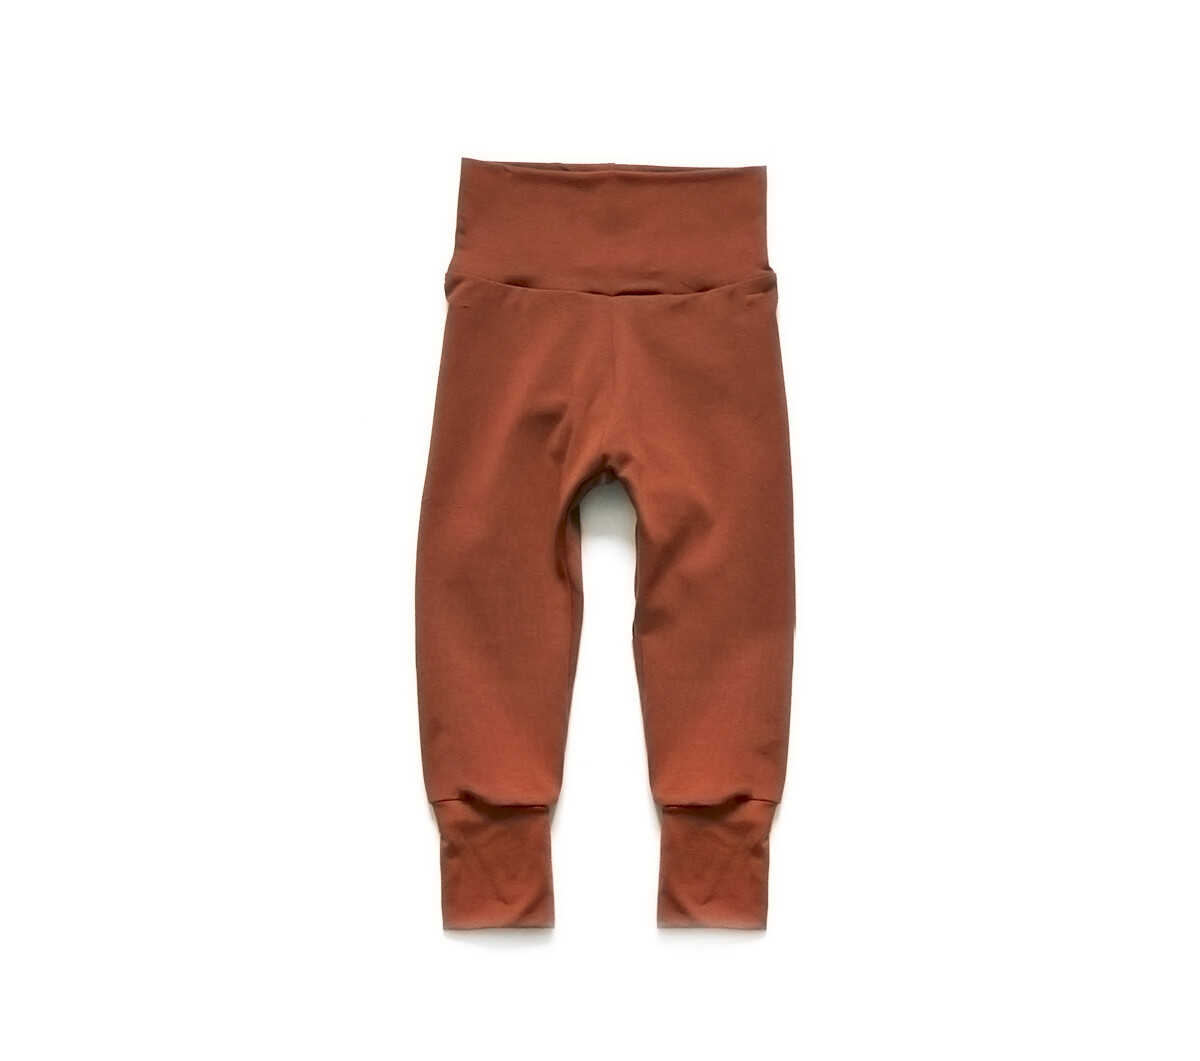 Little Sprout Pants™ in Rust | Grow With Me Leggings - Bamboo